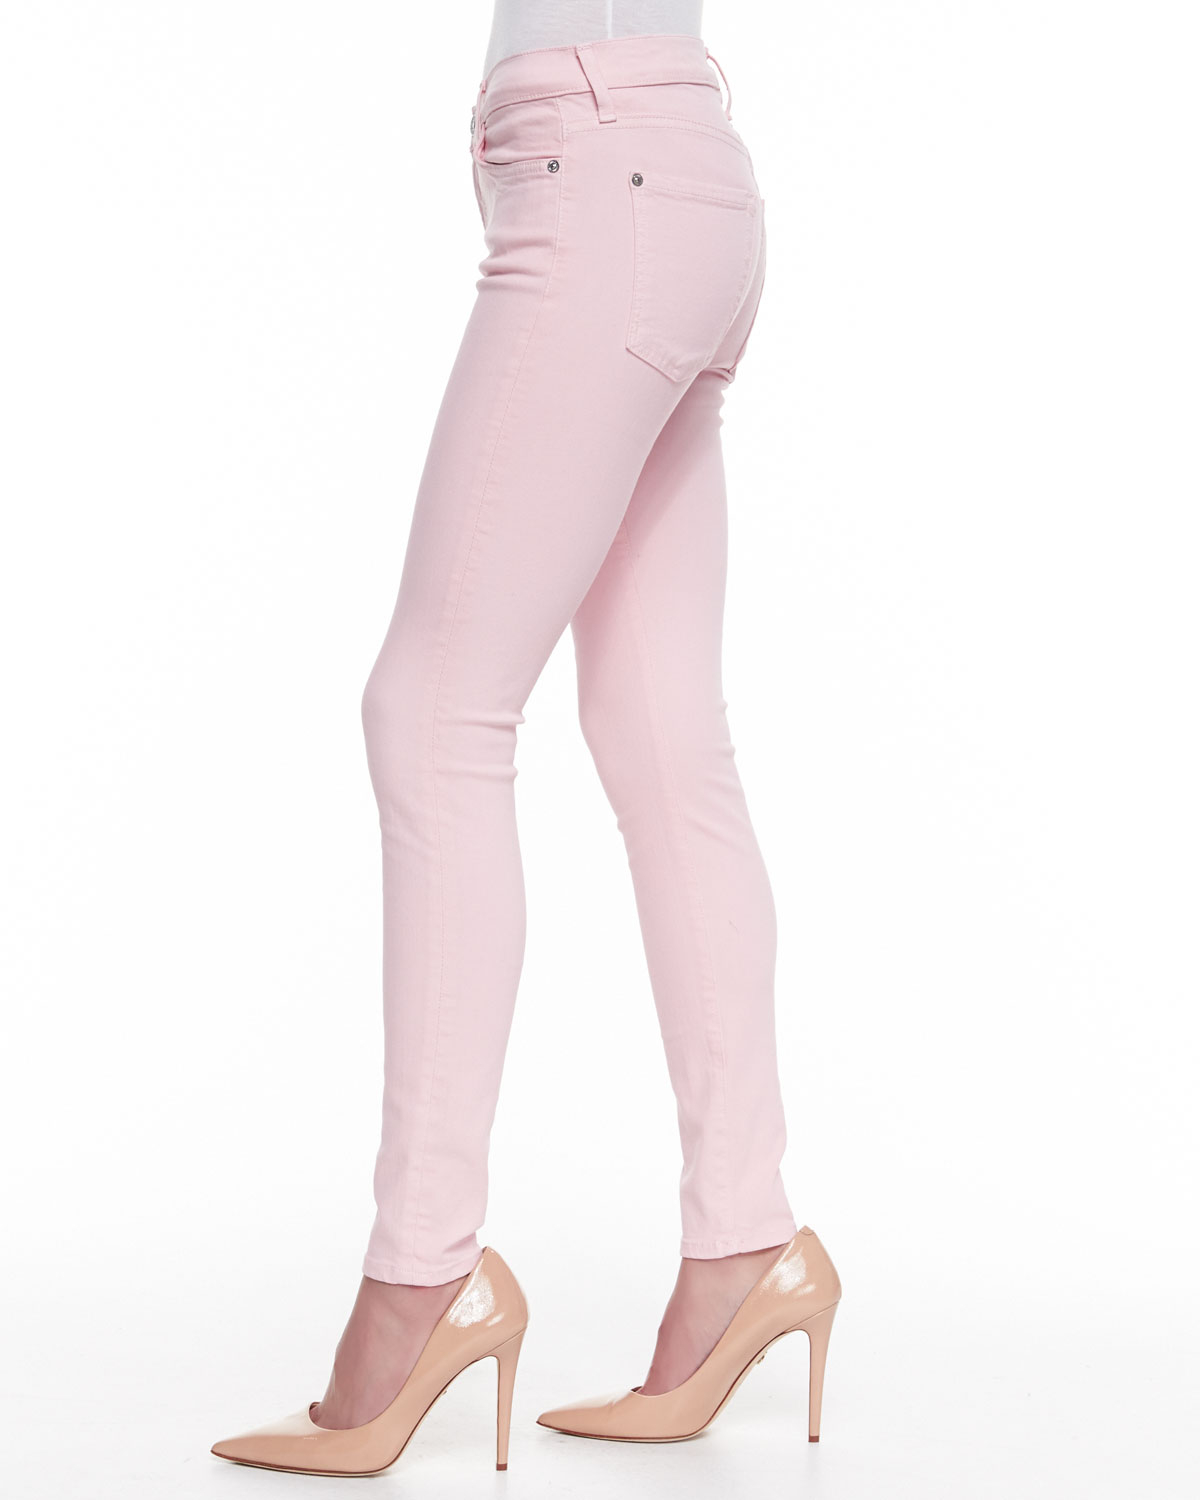 7 For All Mankind Jeans For Women - Macy's